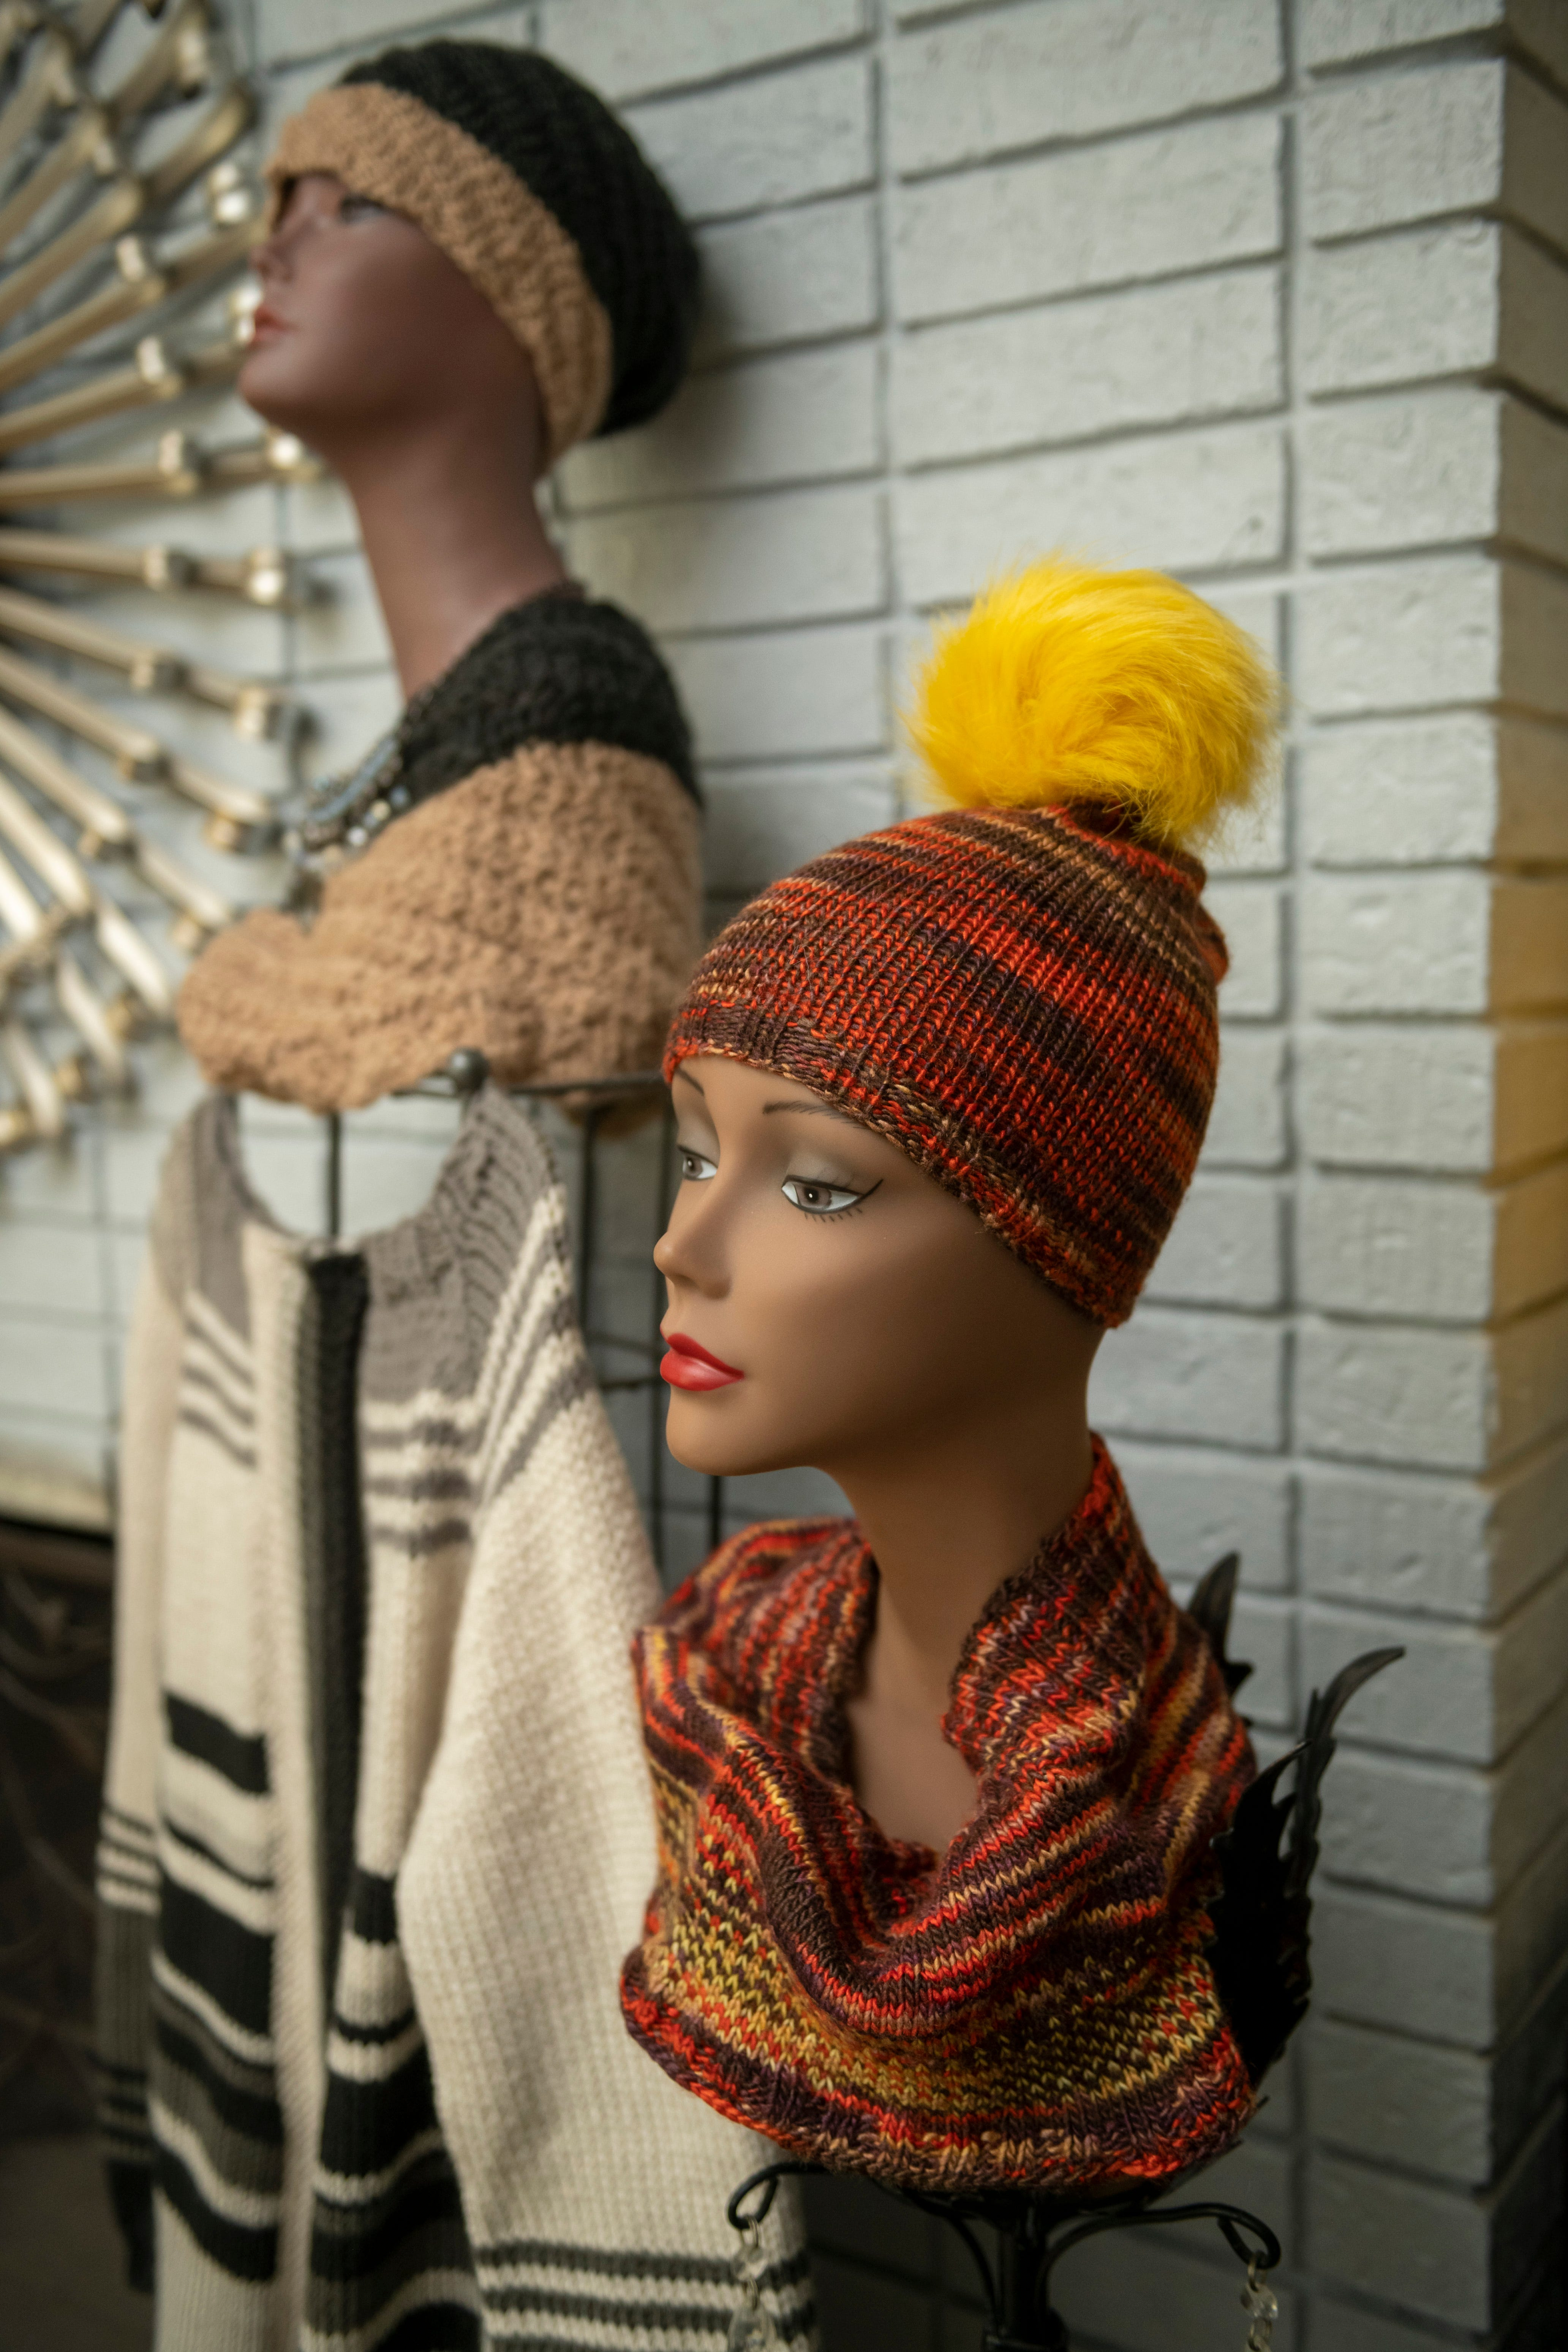 Cowls and a hat with a pom pom are some of the hand knitted items Jones has crafted.